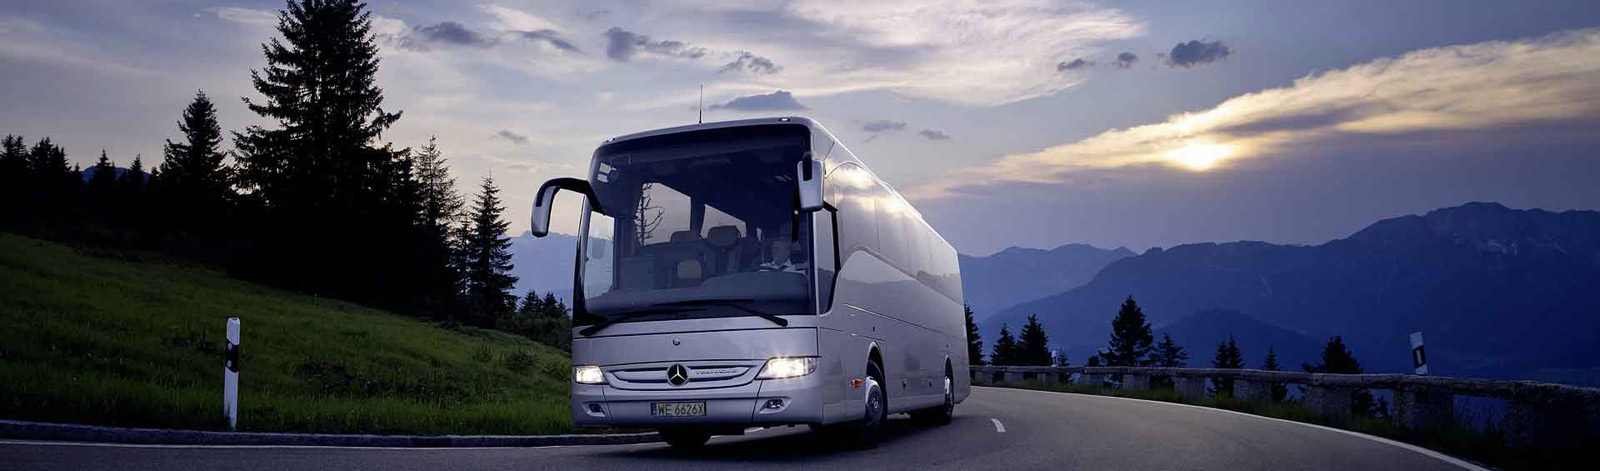 Coach Hire Poland Warsaw - TOP TRAVEL